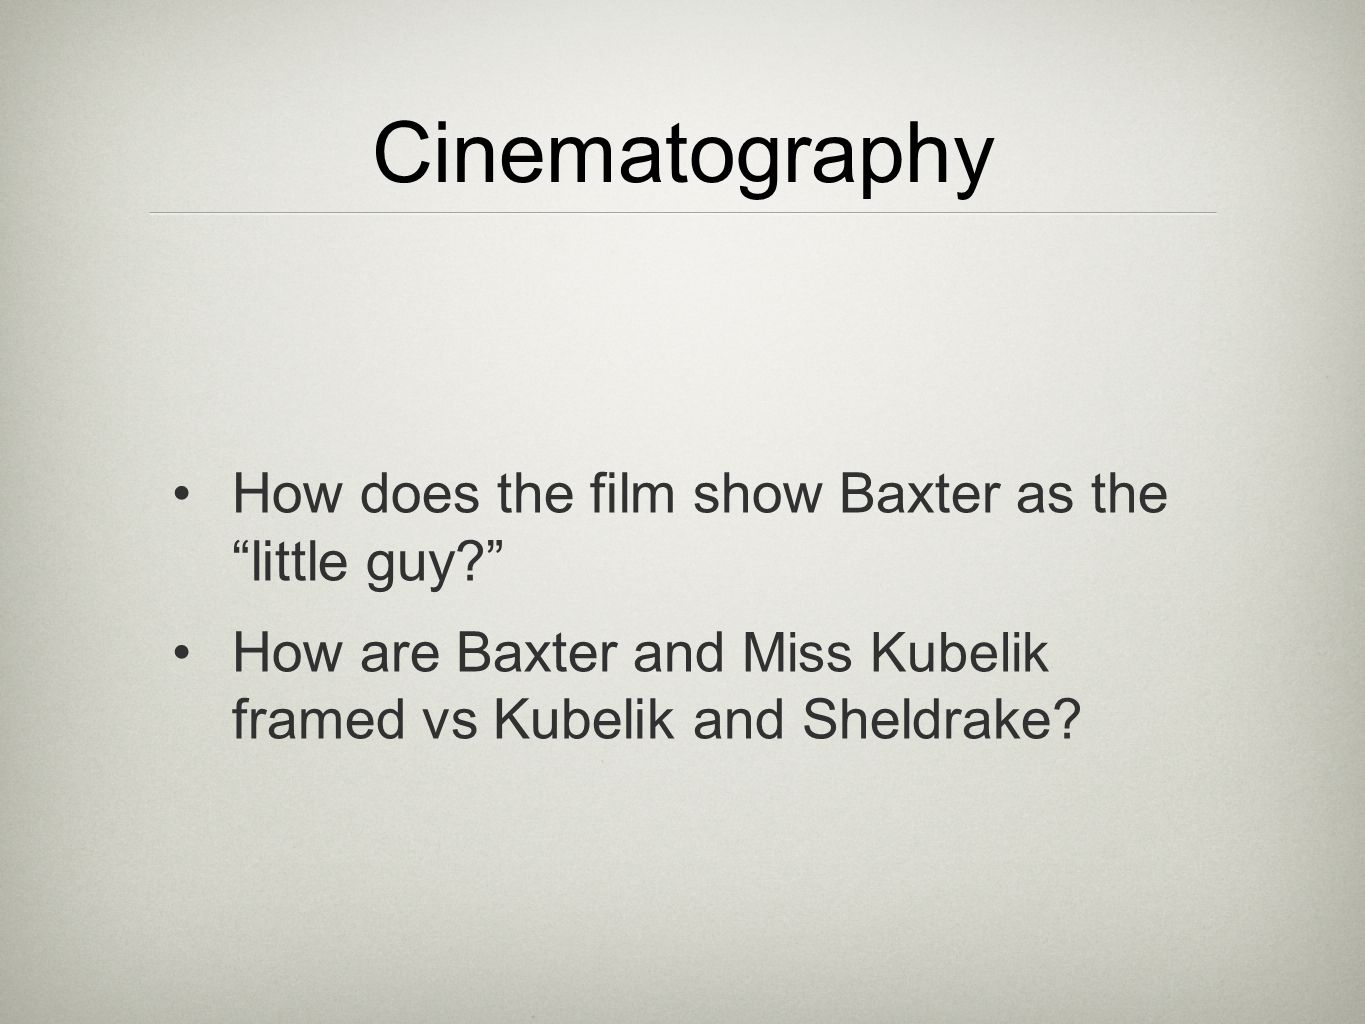 Cinematography How does the film show Baxter as the little guy? How are Baxter and Miss Kubelik framed vs Kubelik and Sheldrake?